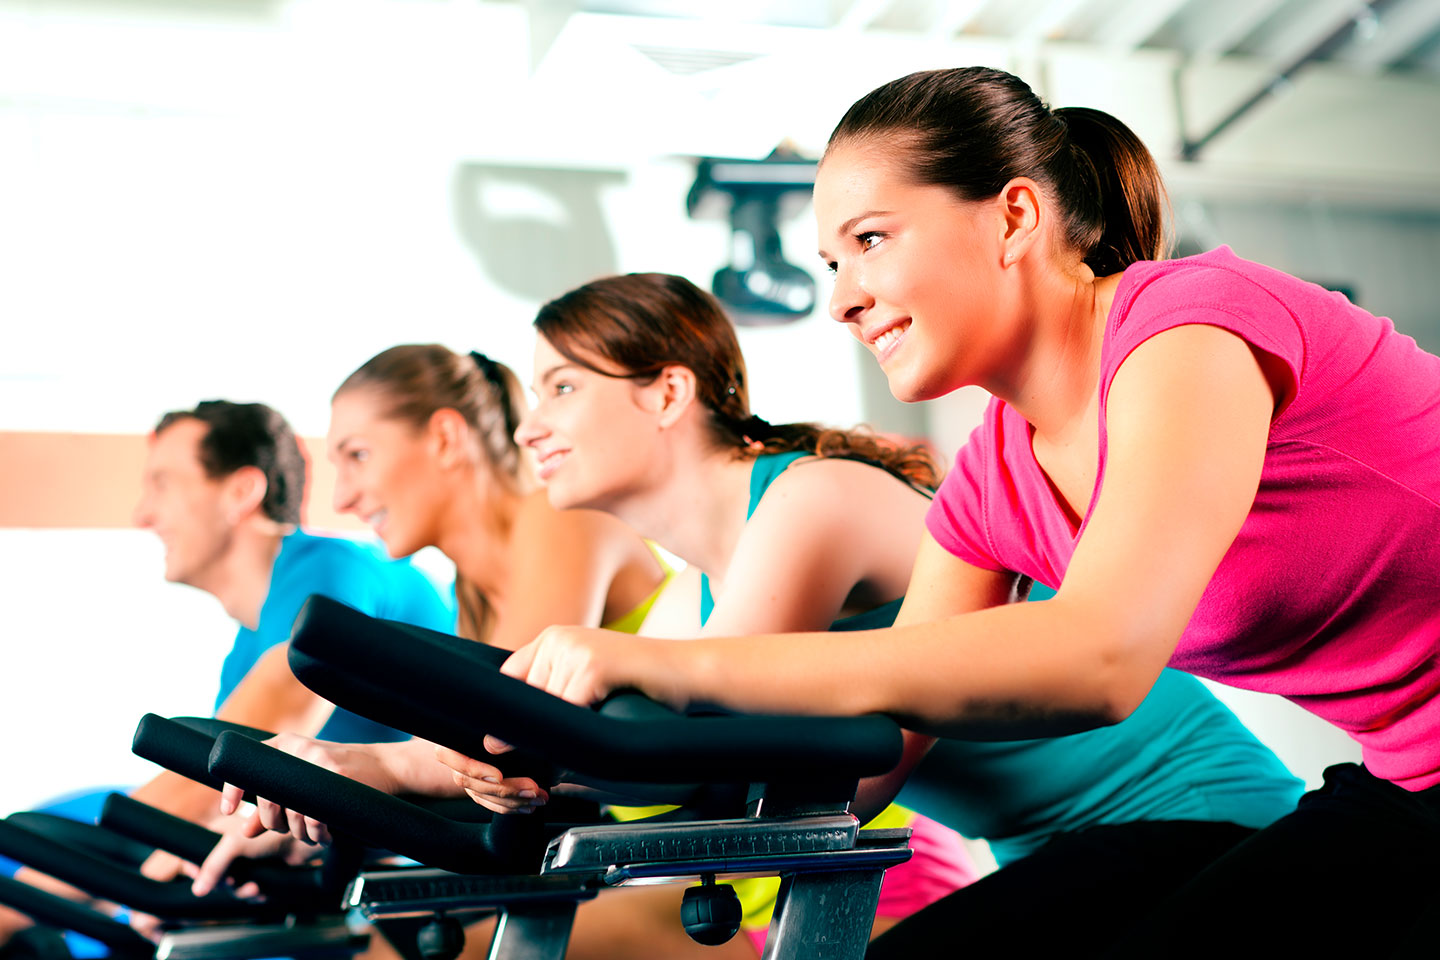 3 Women And A Man In A Spinning Class